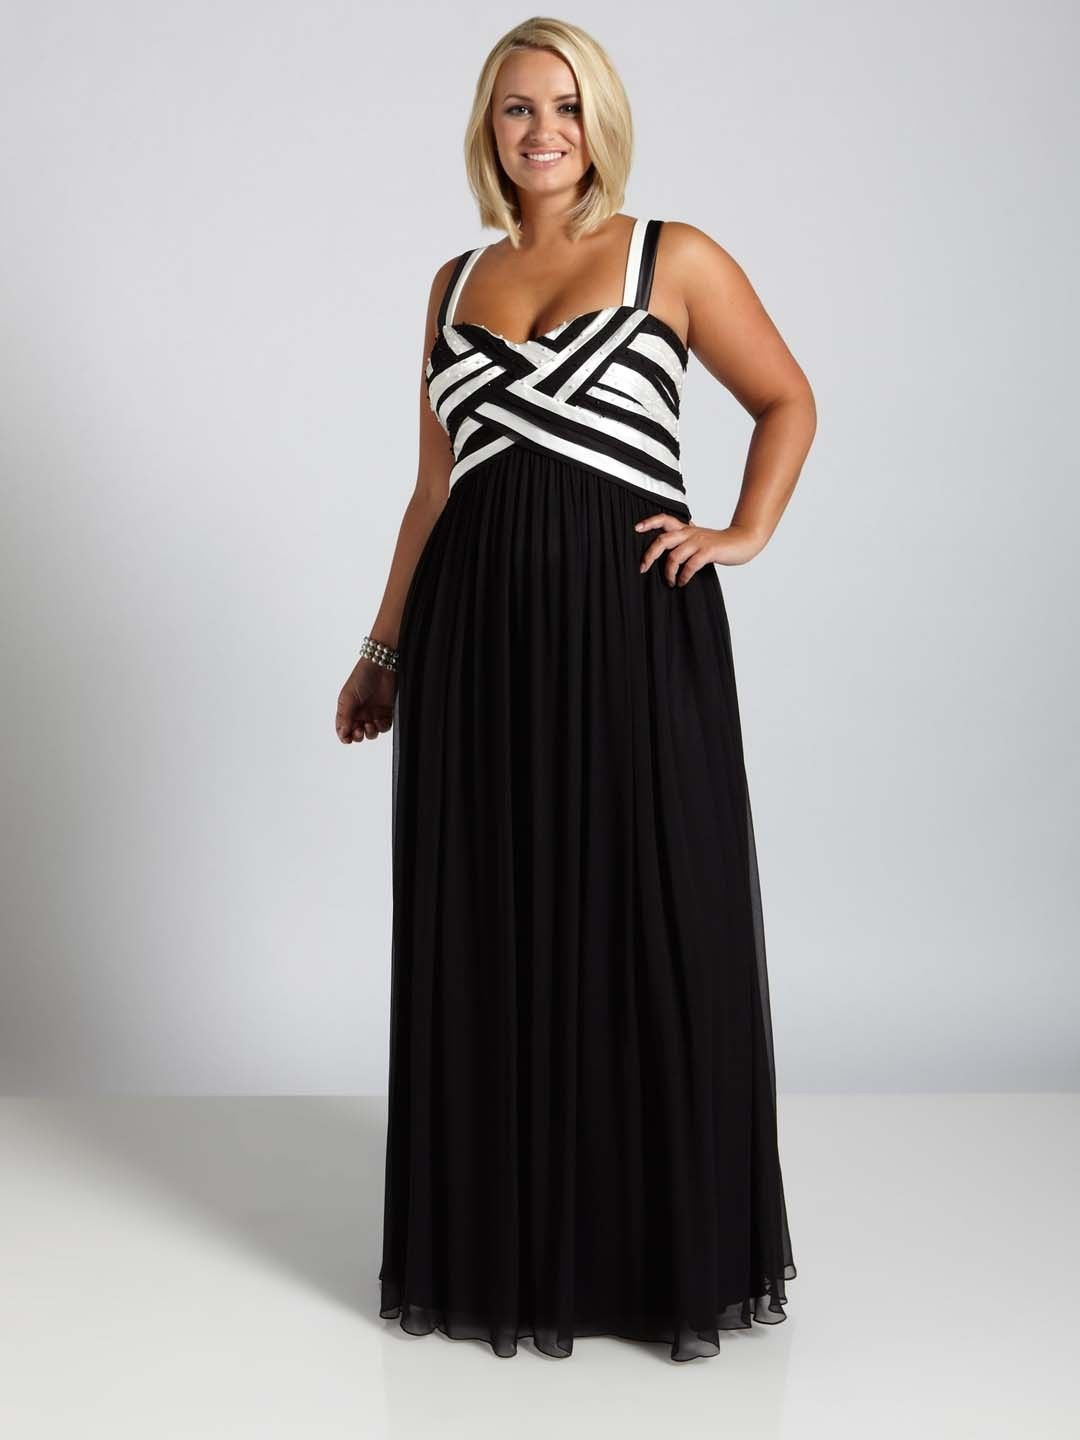 ca04e412527b This black and white dress would be great for any formal special occasion.  You could even wear it to prom. See other options for   plussizeeveningdresses on ...